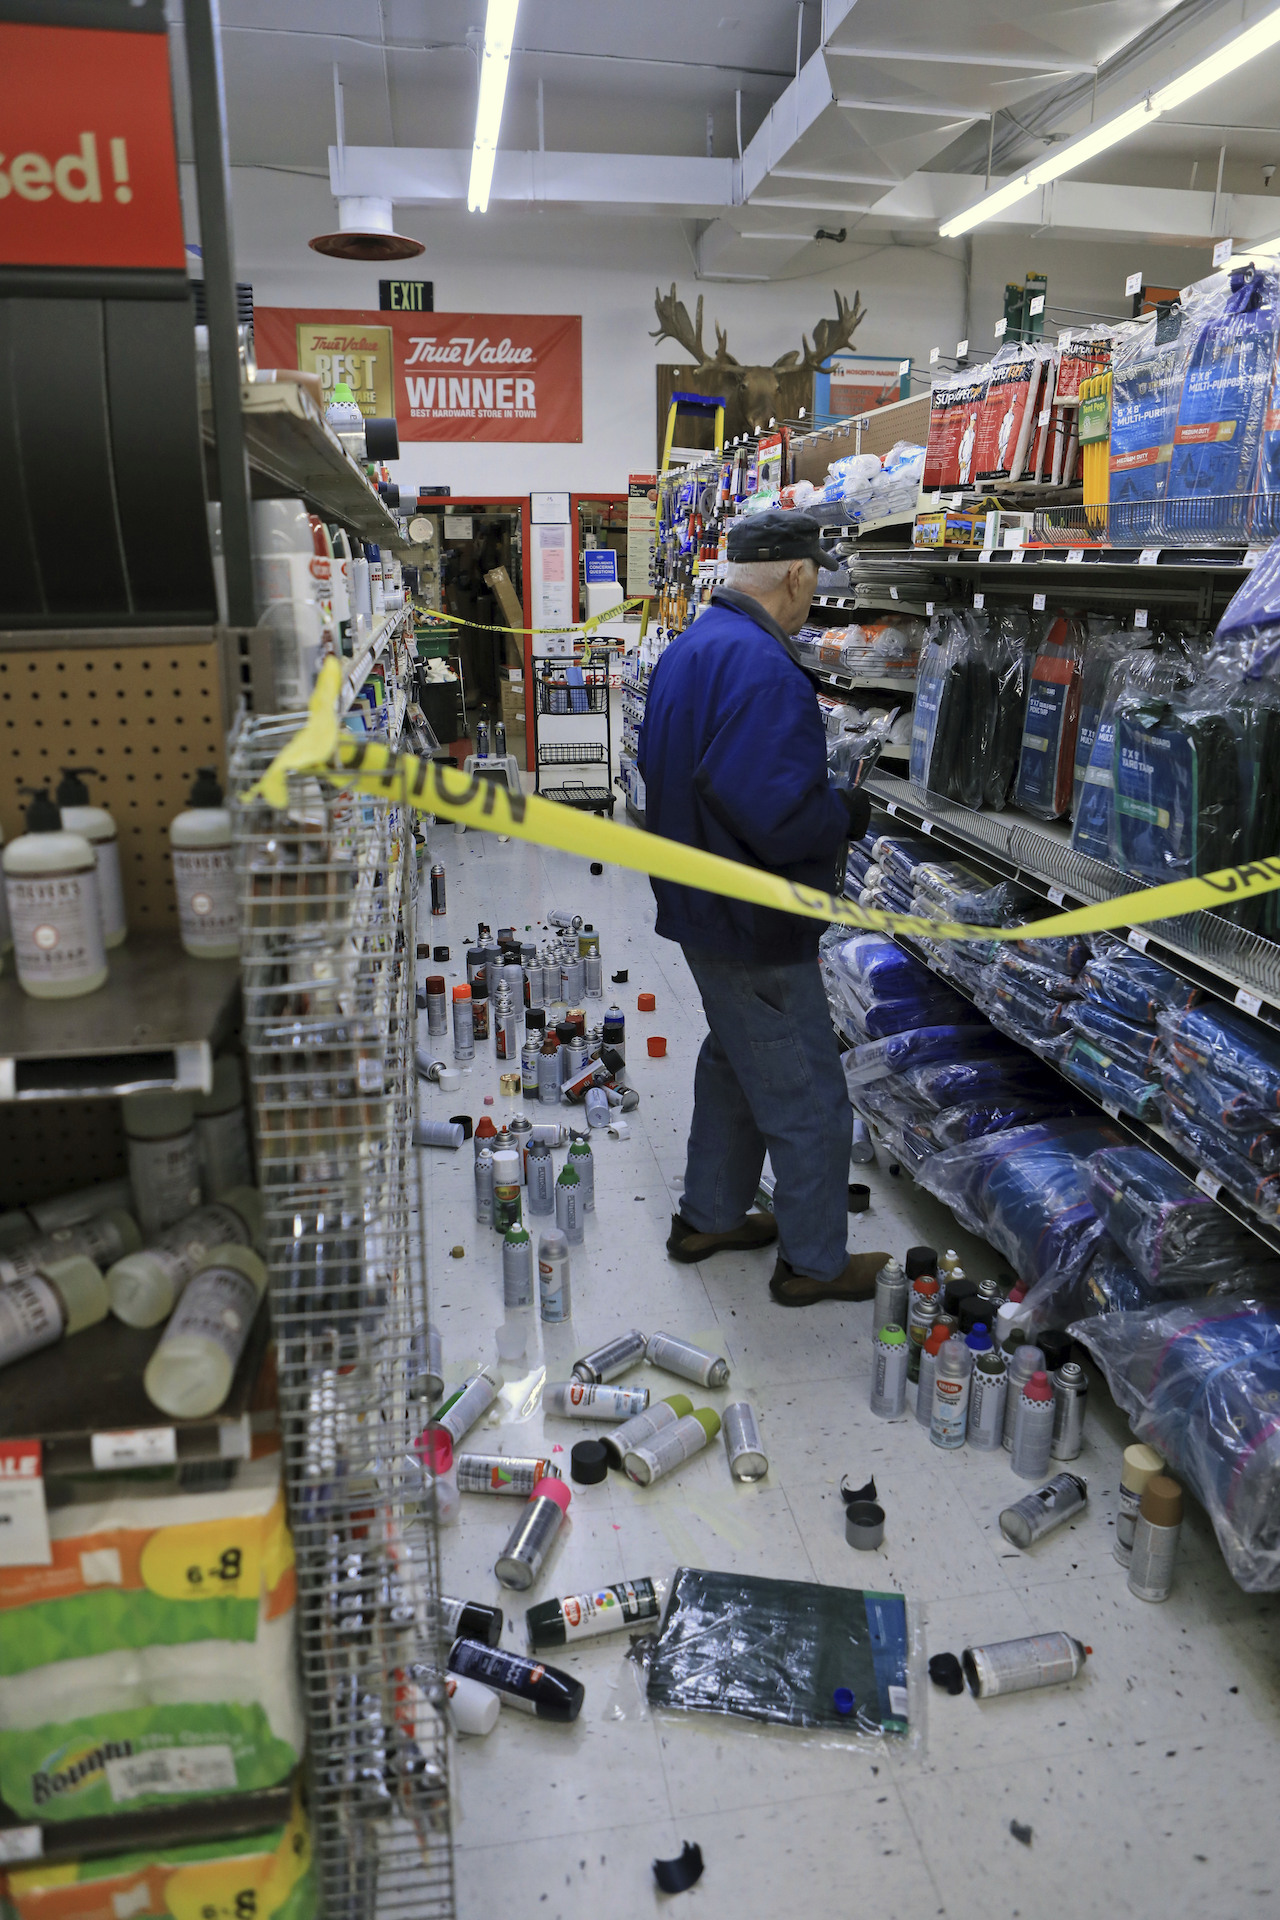 <div class='meta'><div class='origin-logo' data-origin='AP'></div><span class='caption-text' data-credit='AP Photo/Dan Joling'>A customer at Anchorage True Value hardware store shops in the partially cleaned-up paint aisle after an earthquake Friday morning, Nov. 30, 2018, in Anchorage, Alaska.</span></div>